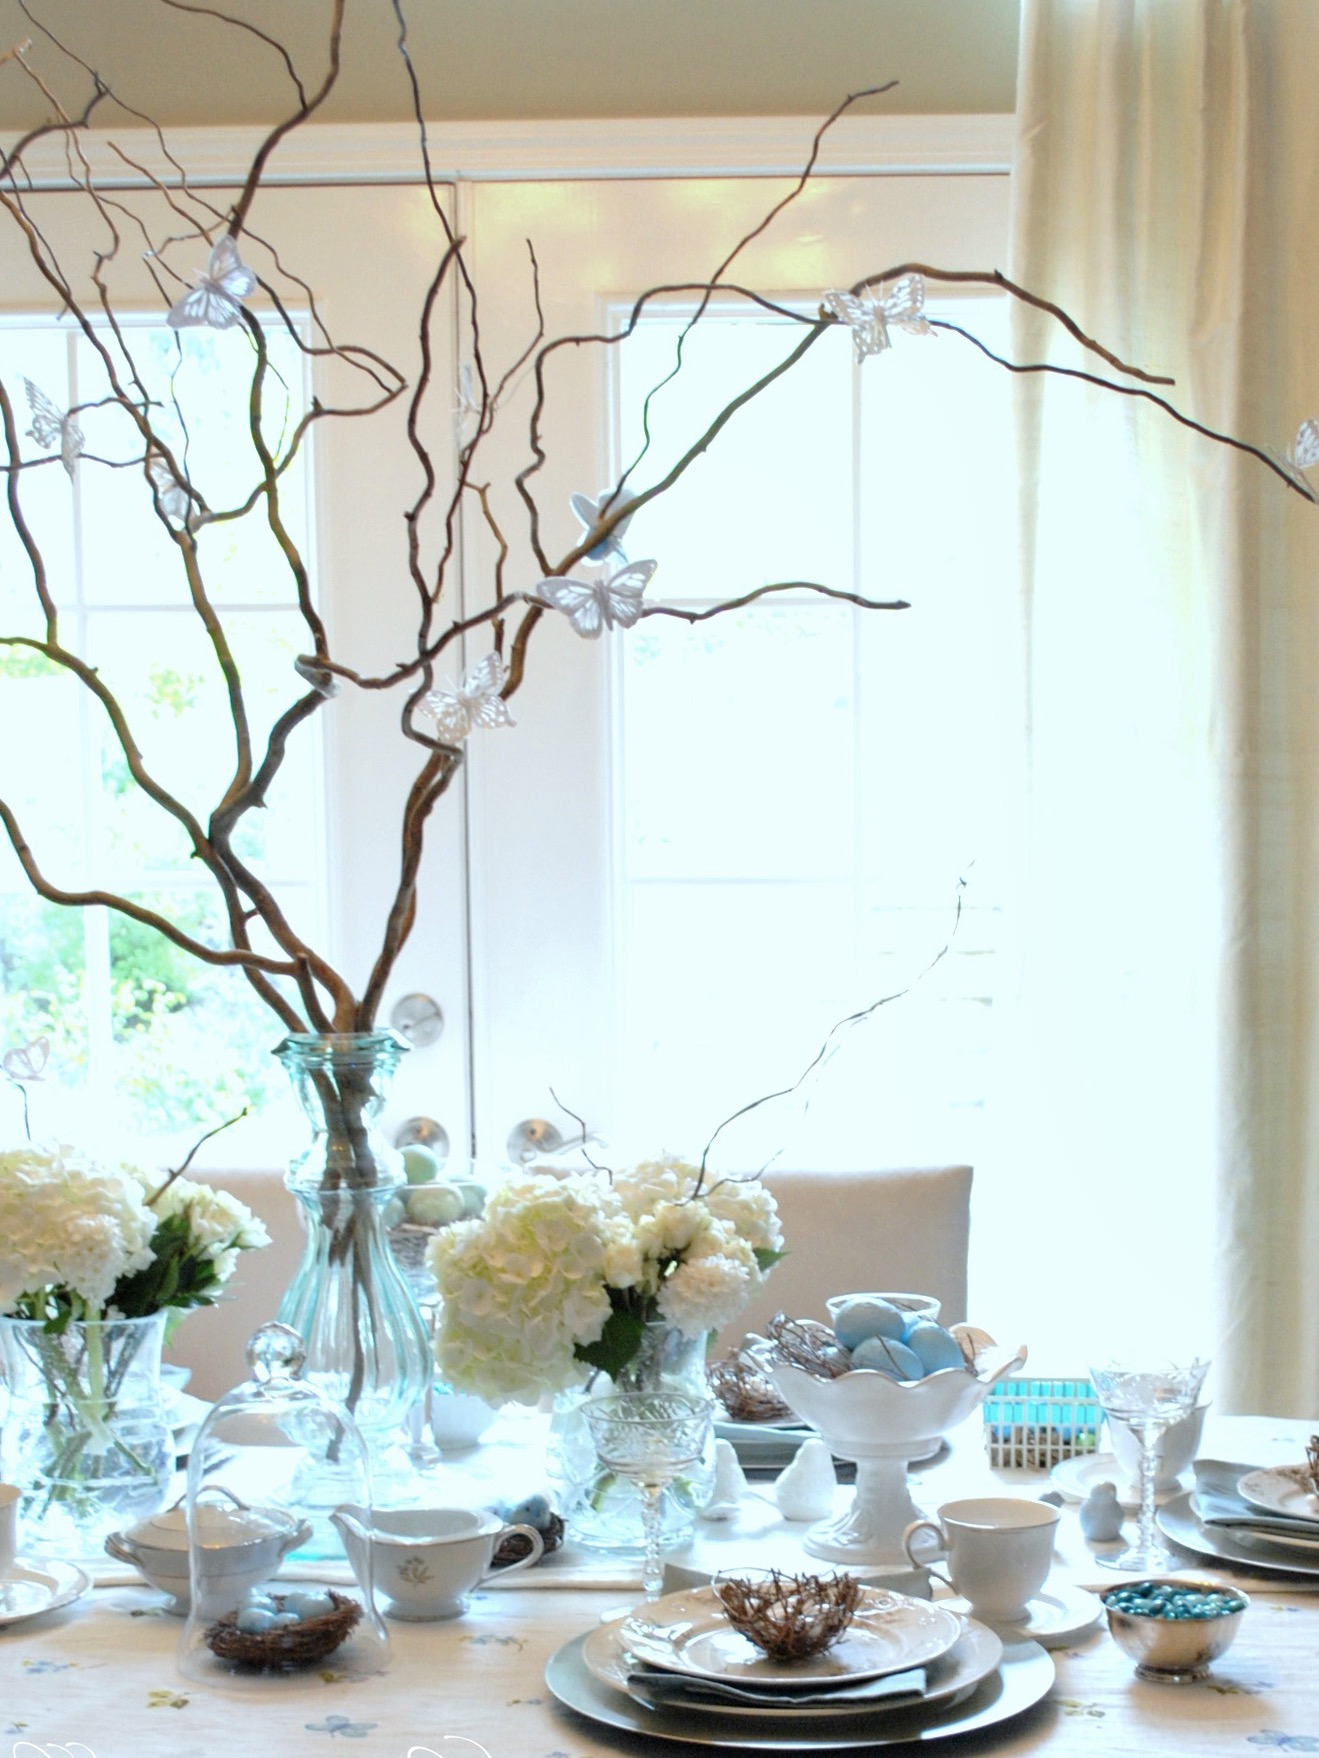 Manzanita Branches With Decorative Paper Butterflies Non Floral Wedding Centerpiece (Image 25 of 35)